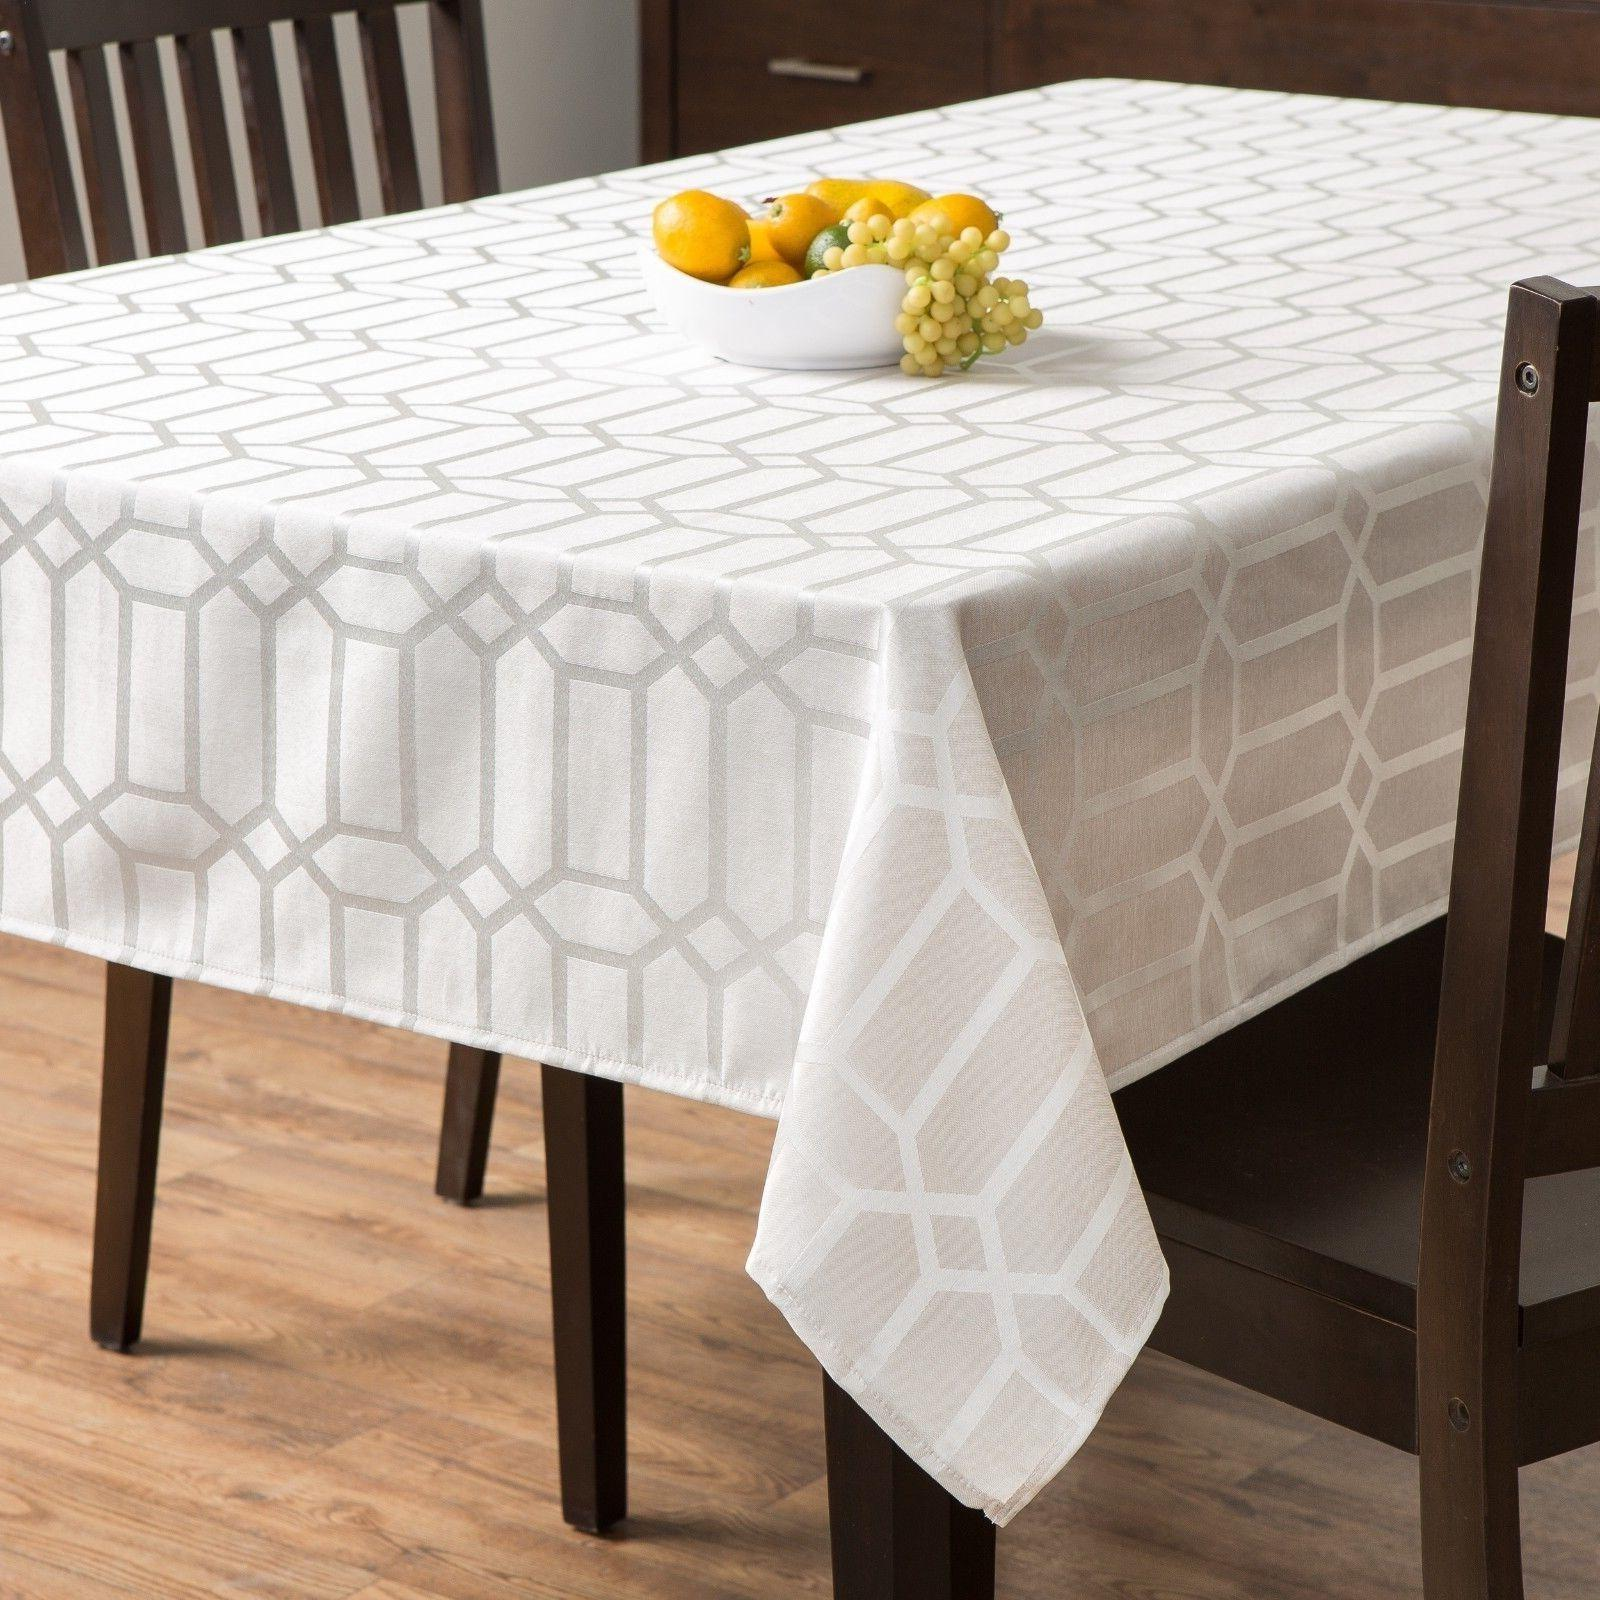 glimmer fabric tablecloth heavy weight wrinkle resistant